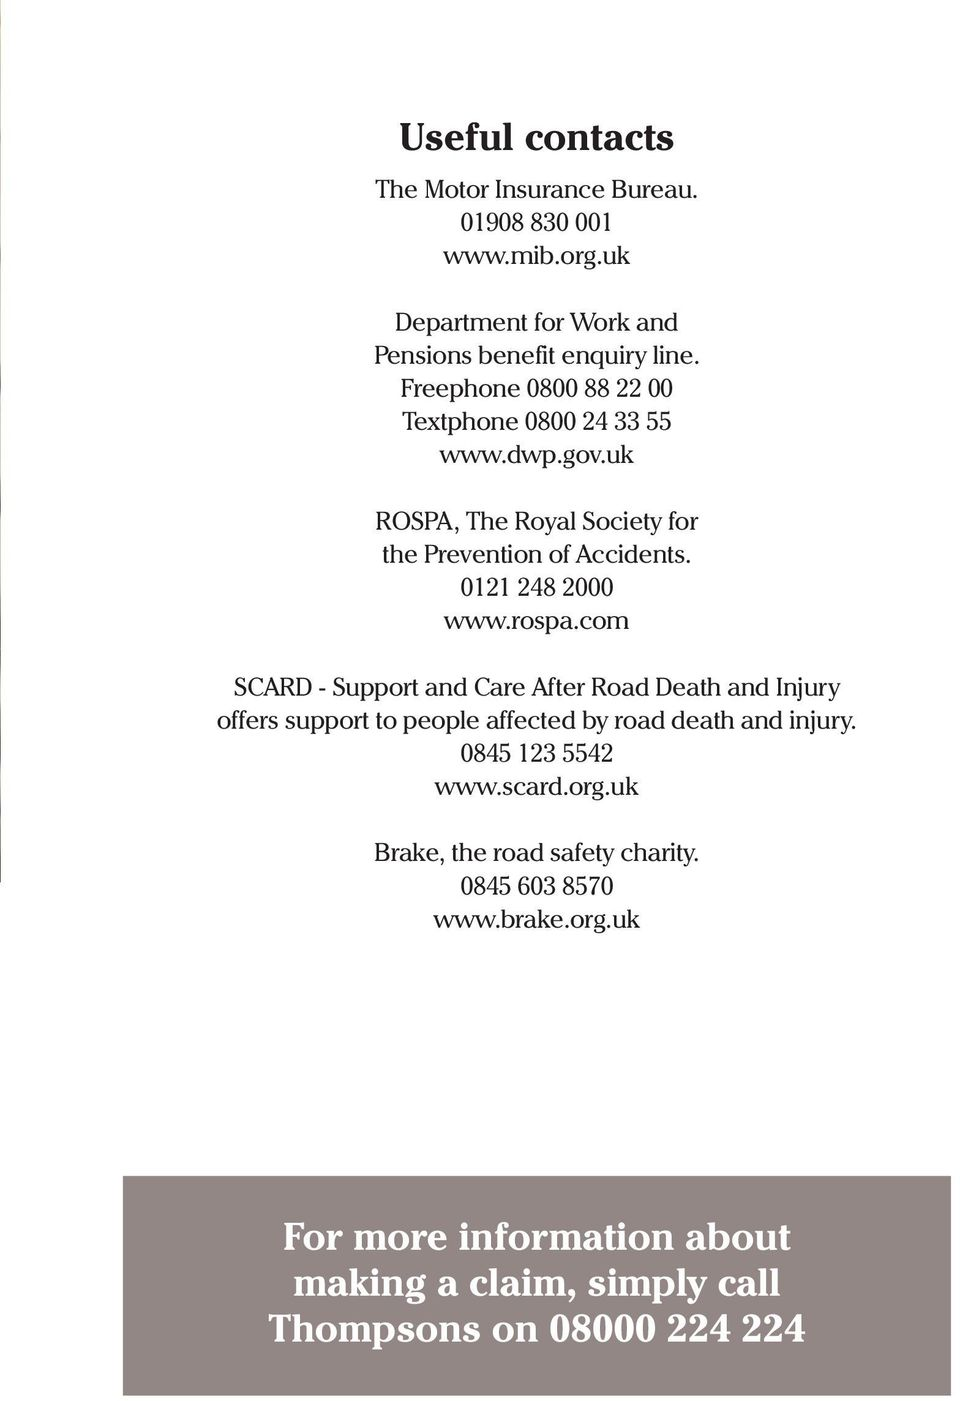 rospa.com SCARD - Support and Care After Road Death and Injury offers support to people affected by road death and injury. 0845 123 5542 www.